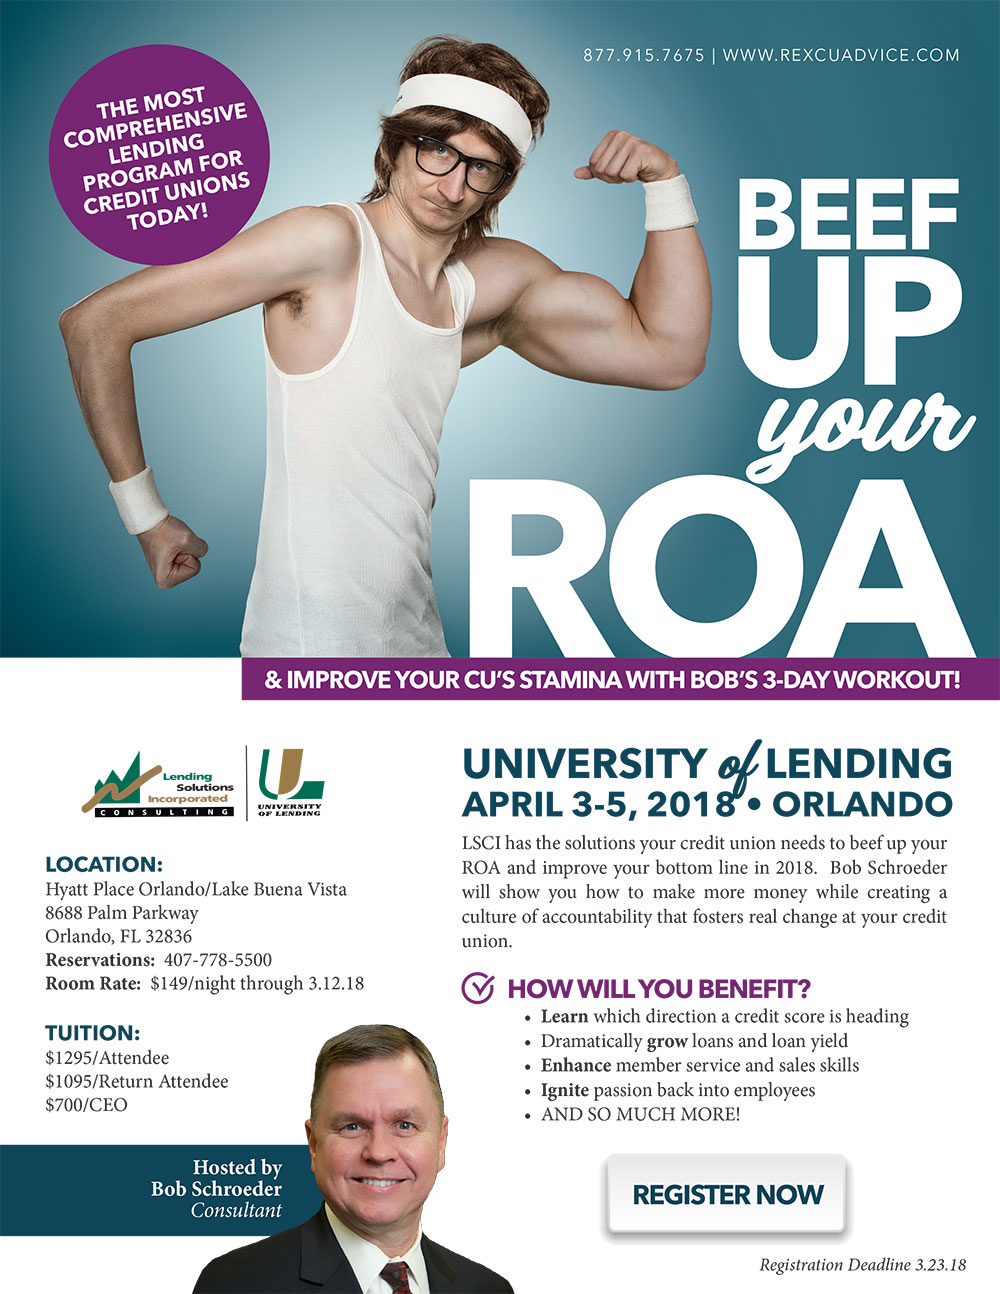 3-Day University of Lending - Orlando, FL - April 3-5, 2018